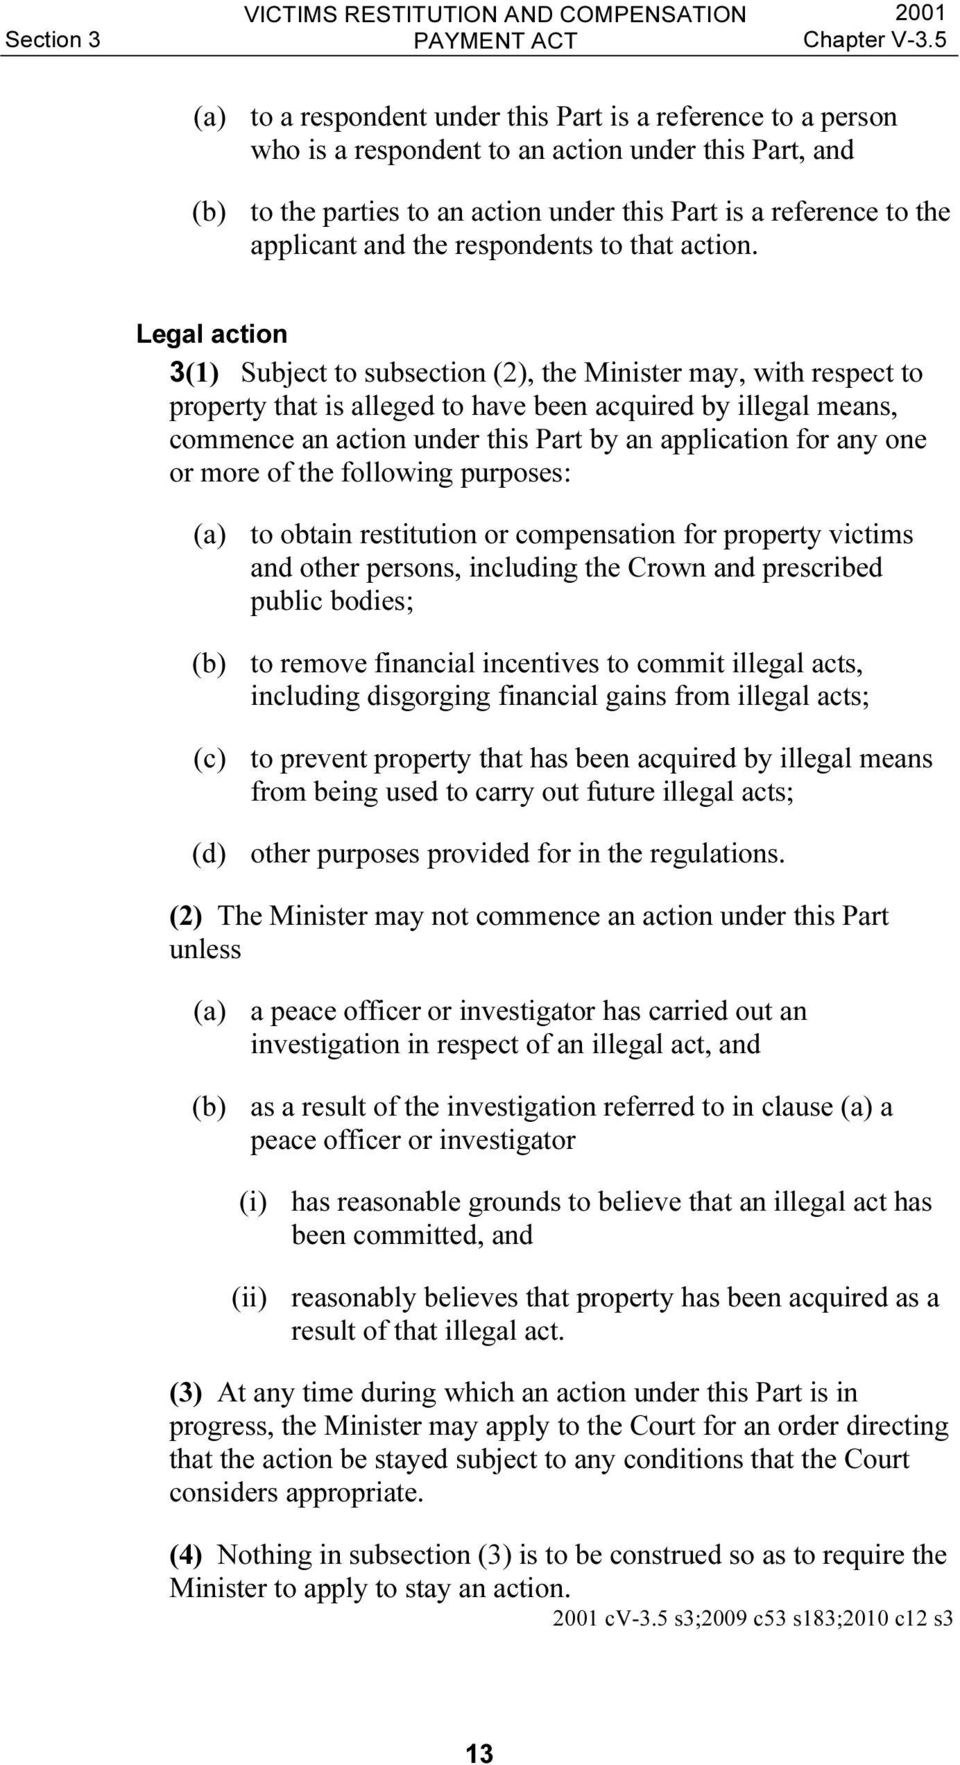 Legal action 3(1) Subject to subsection (2), the Minister may, with respect to property that is alleged to have been acquired by illegal means, commence an action under this Part by an application